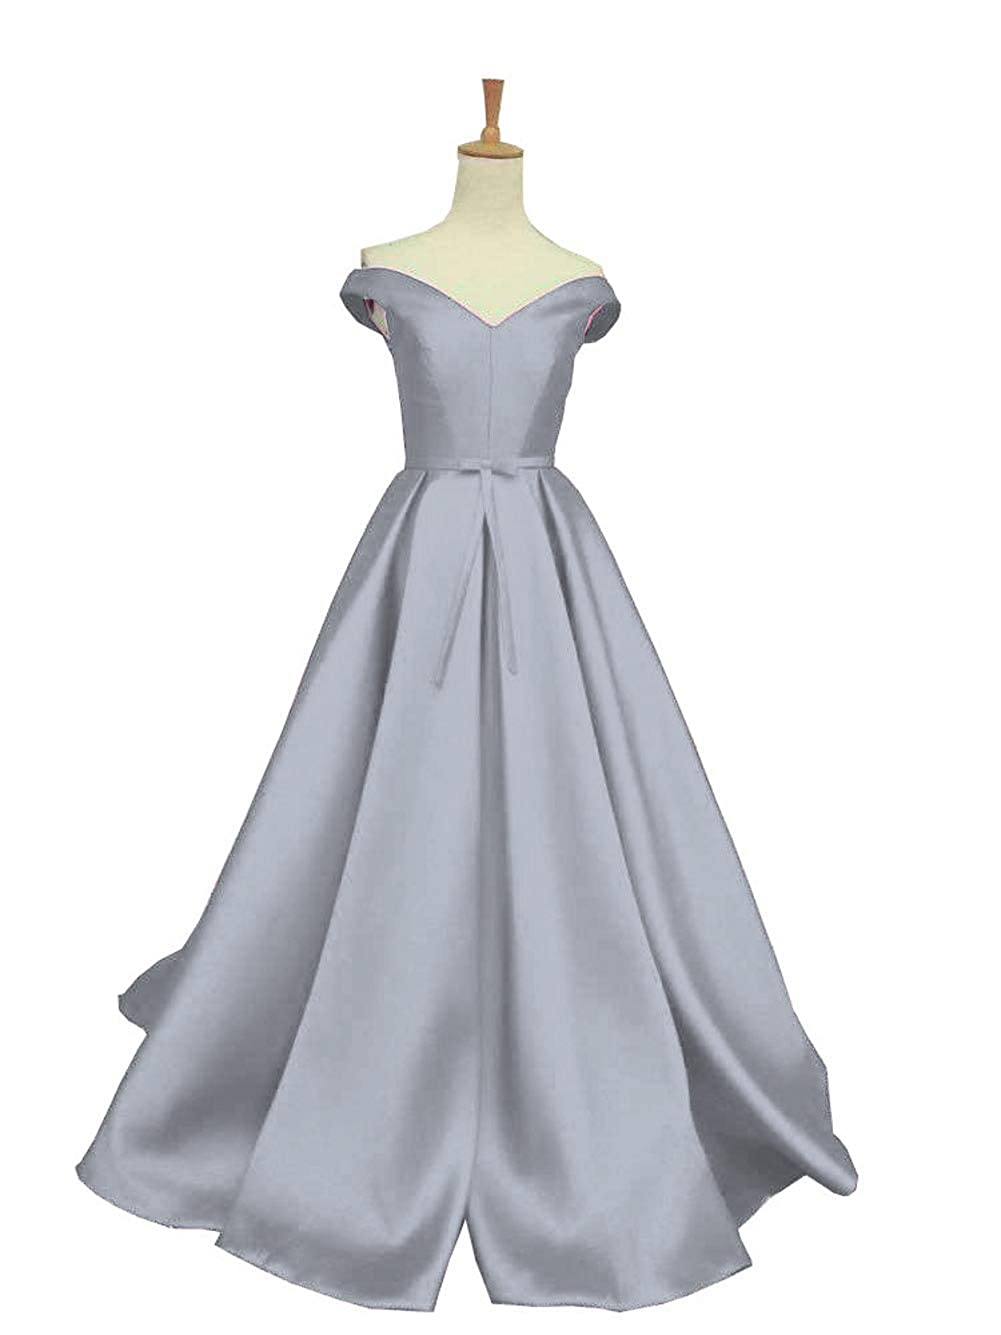 Silver DreamSkirts Women's Off The Shoulder ALine Evening Ball Gowns with Bow